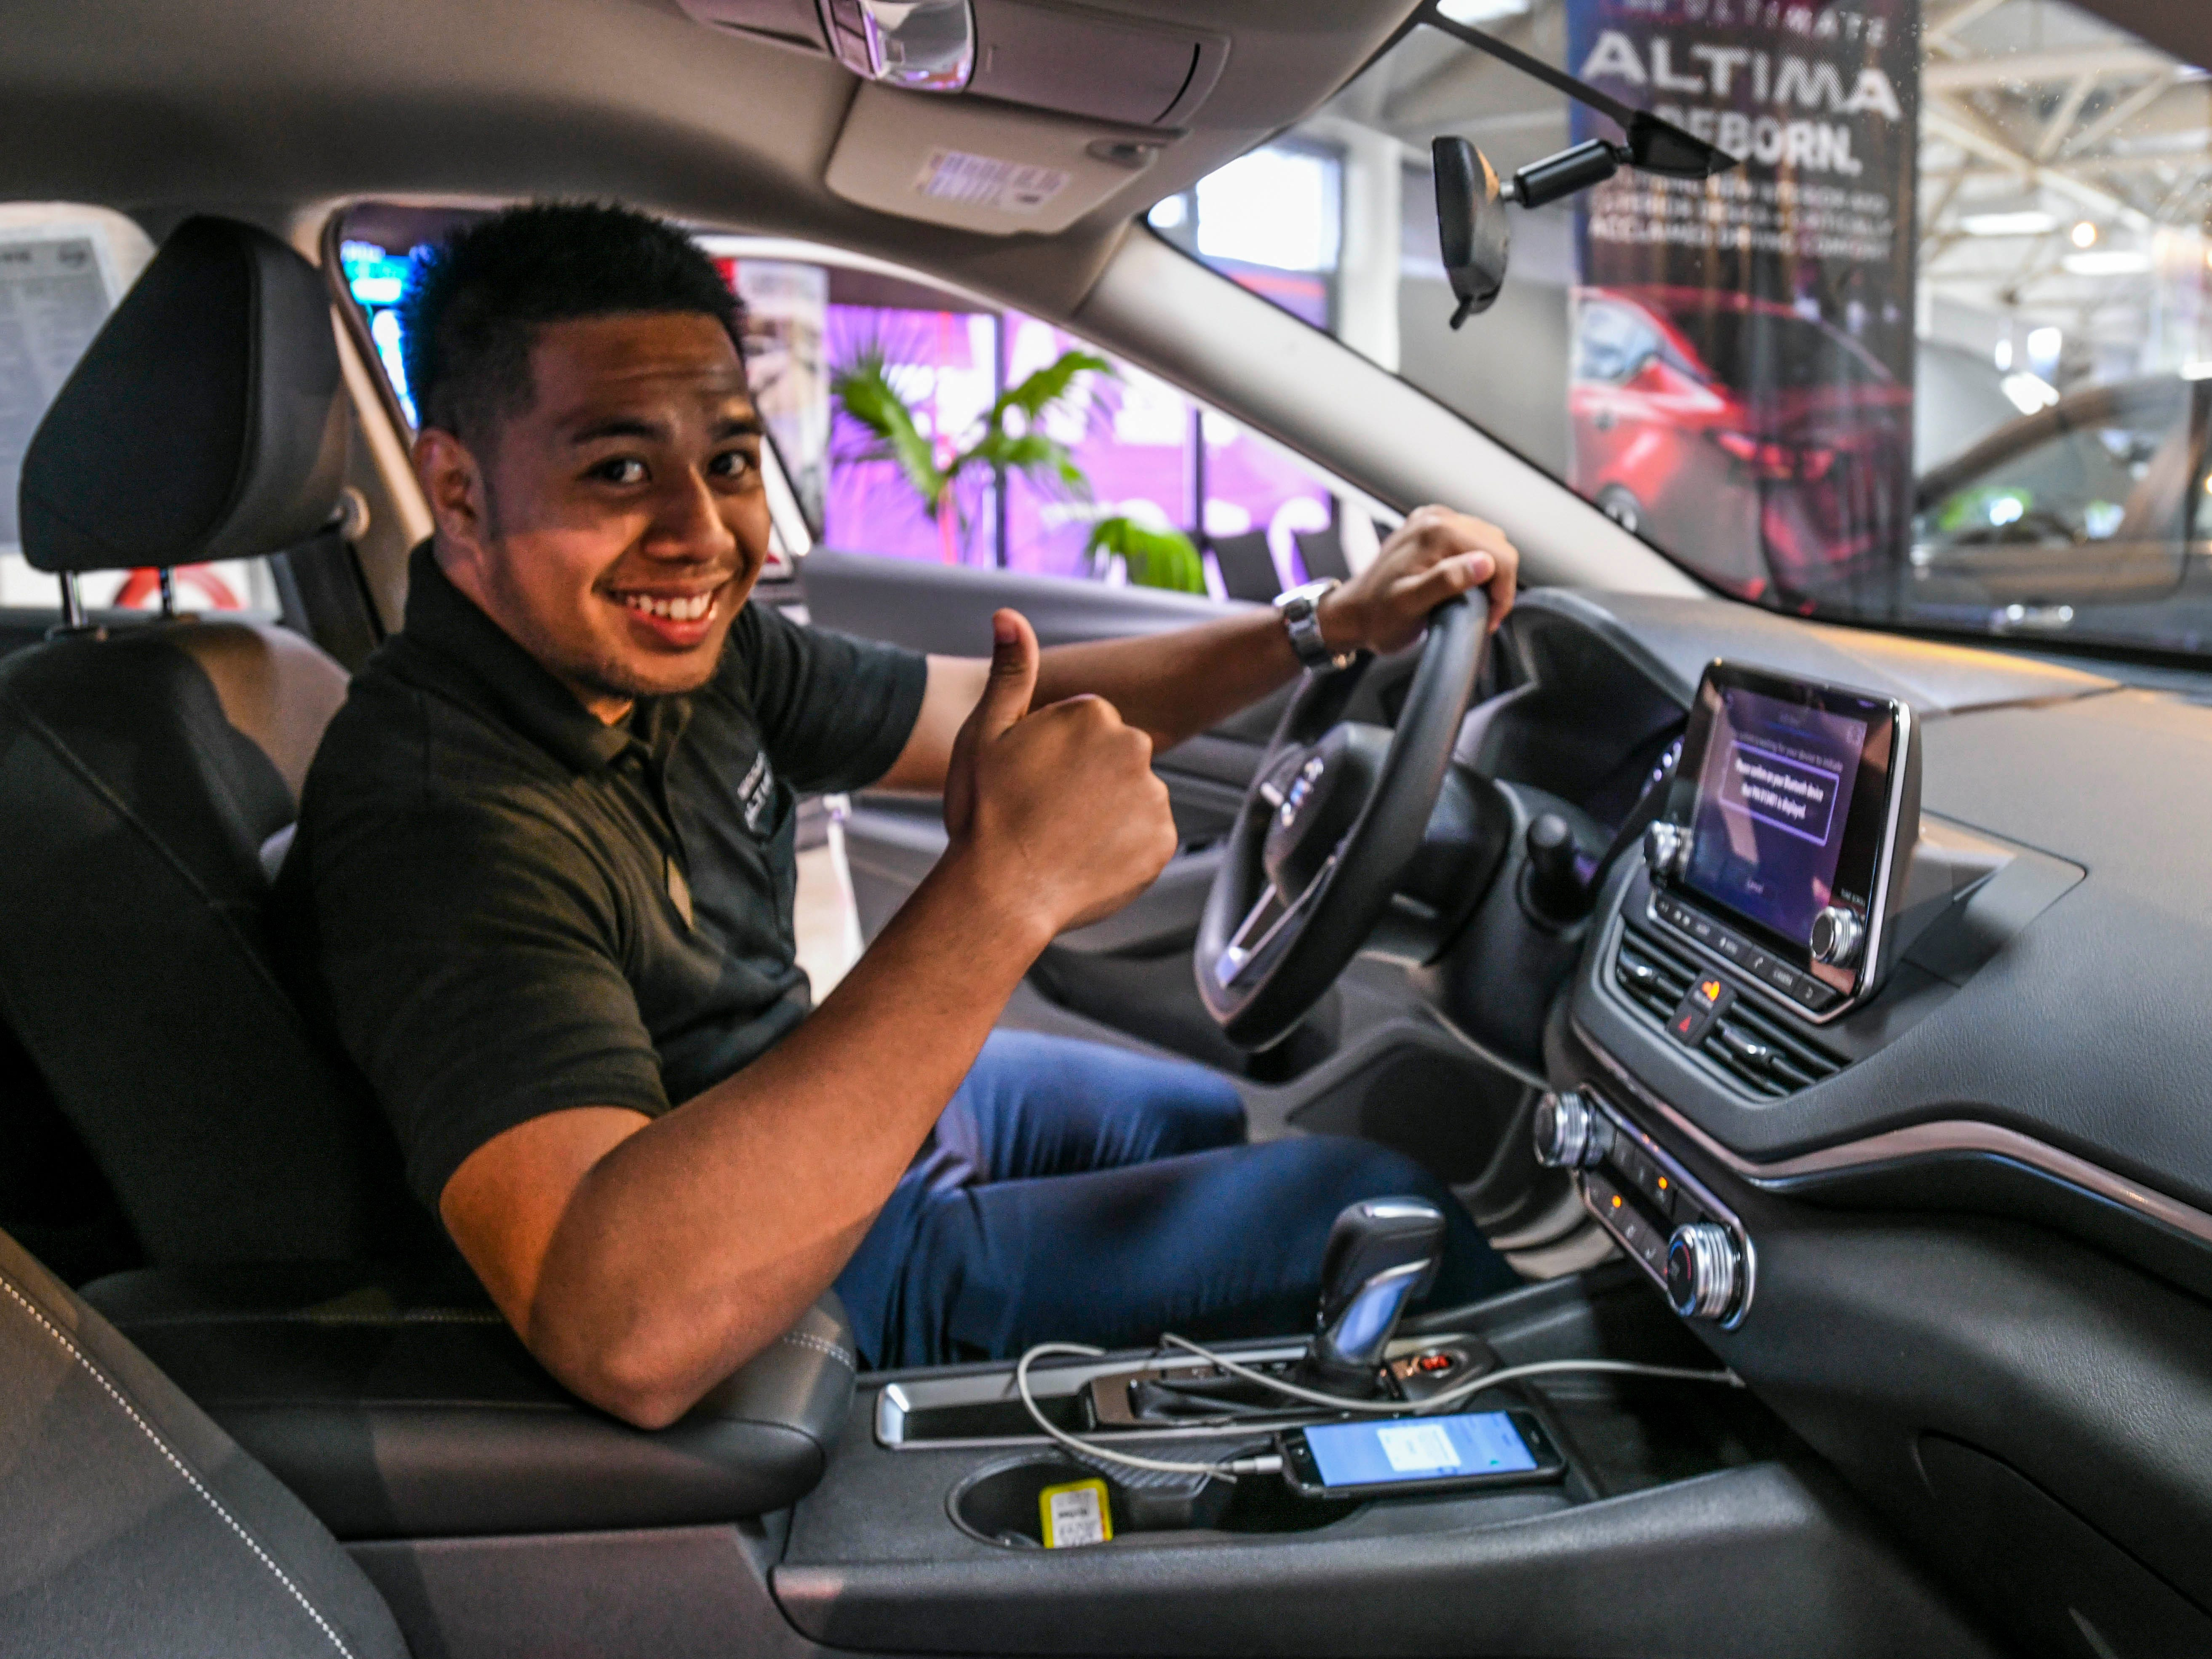 Eddie Wagthuth, a sales consultant at Nissan Guam, gives his approval for the Apple CarPlay feature that could be found in the redesigned 2019 Nissan Altima while at the dealership's showroom in upper Tumon on Friday, Jan. 18, 2019. The connectivity option allows a user to transfer the operations for the applications on their mobile iOS phone to the vehicle's seven-inch Advanced Drive Assist Display, Wagthuth said.